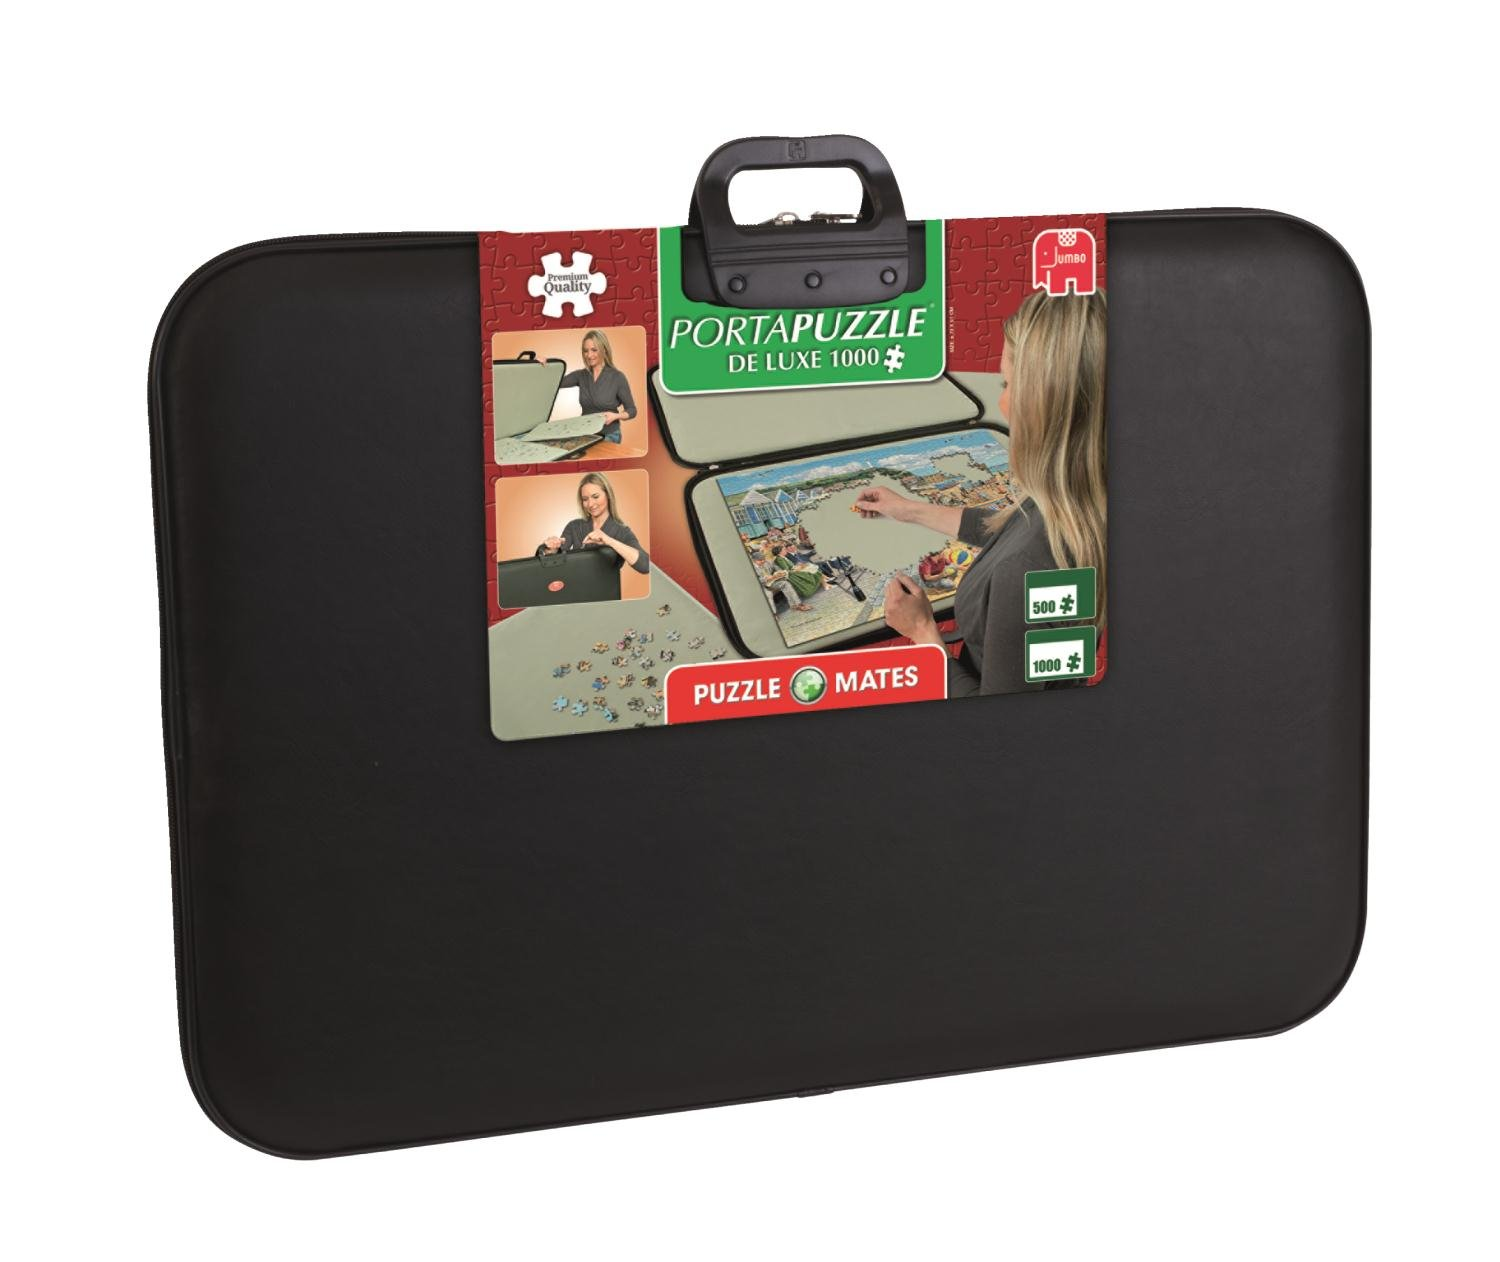 Portapuzzle Deluxe 1000 (Jigsaw Puzzle Accessory)